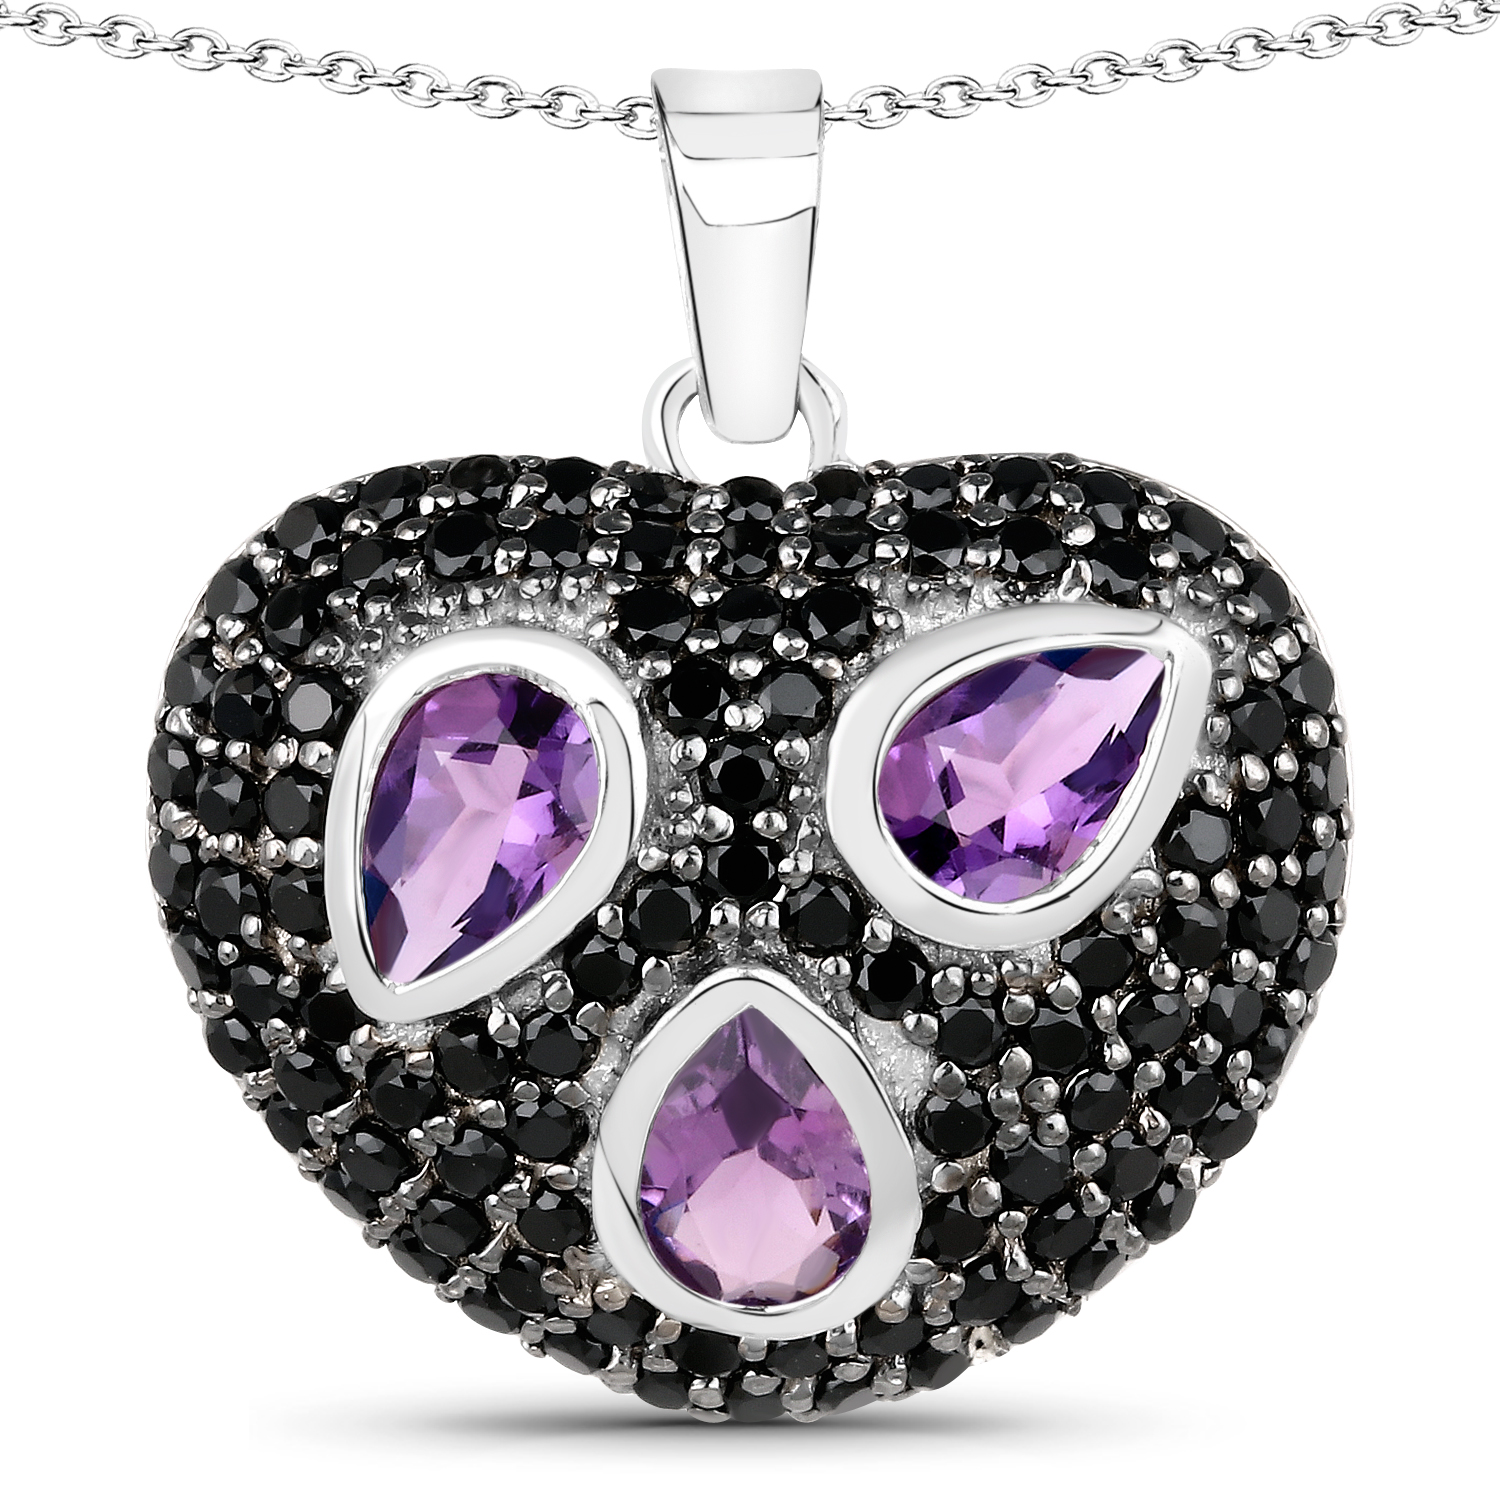 925 Sterling Silver Purple Amethyst Pendant Charm Necklace Gemstone Geometric Fine Jewelry Gifts For Women For Her